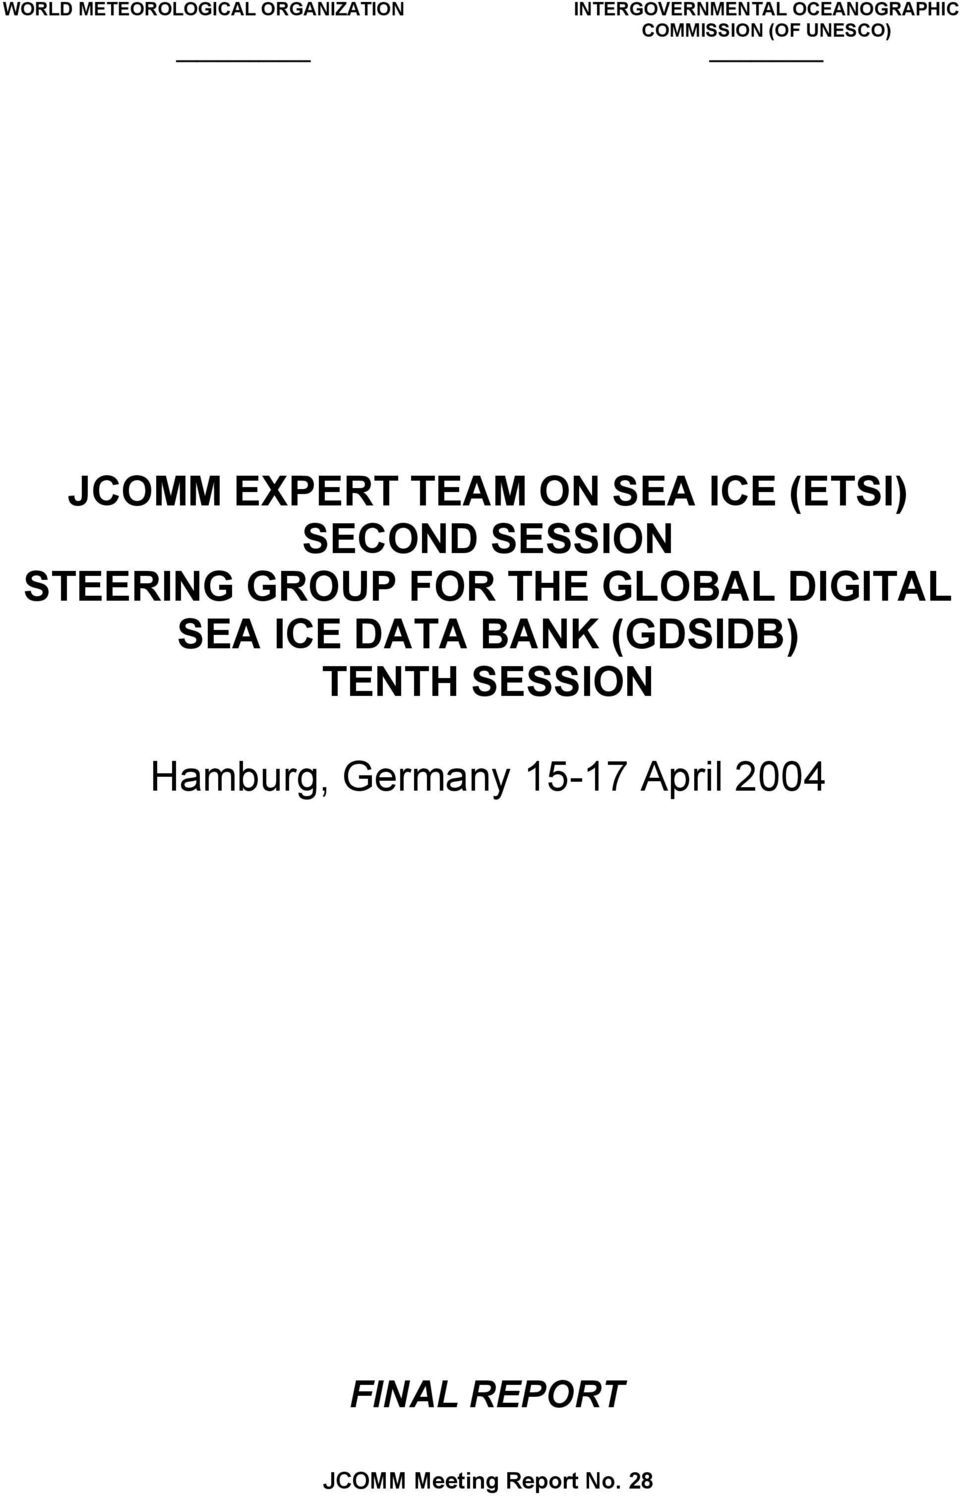 STEERING GROUP FOR THE GLOBAL DIGITAL SEA ICE DATA BANK (GDSIDB) TENTH